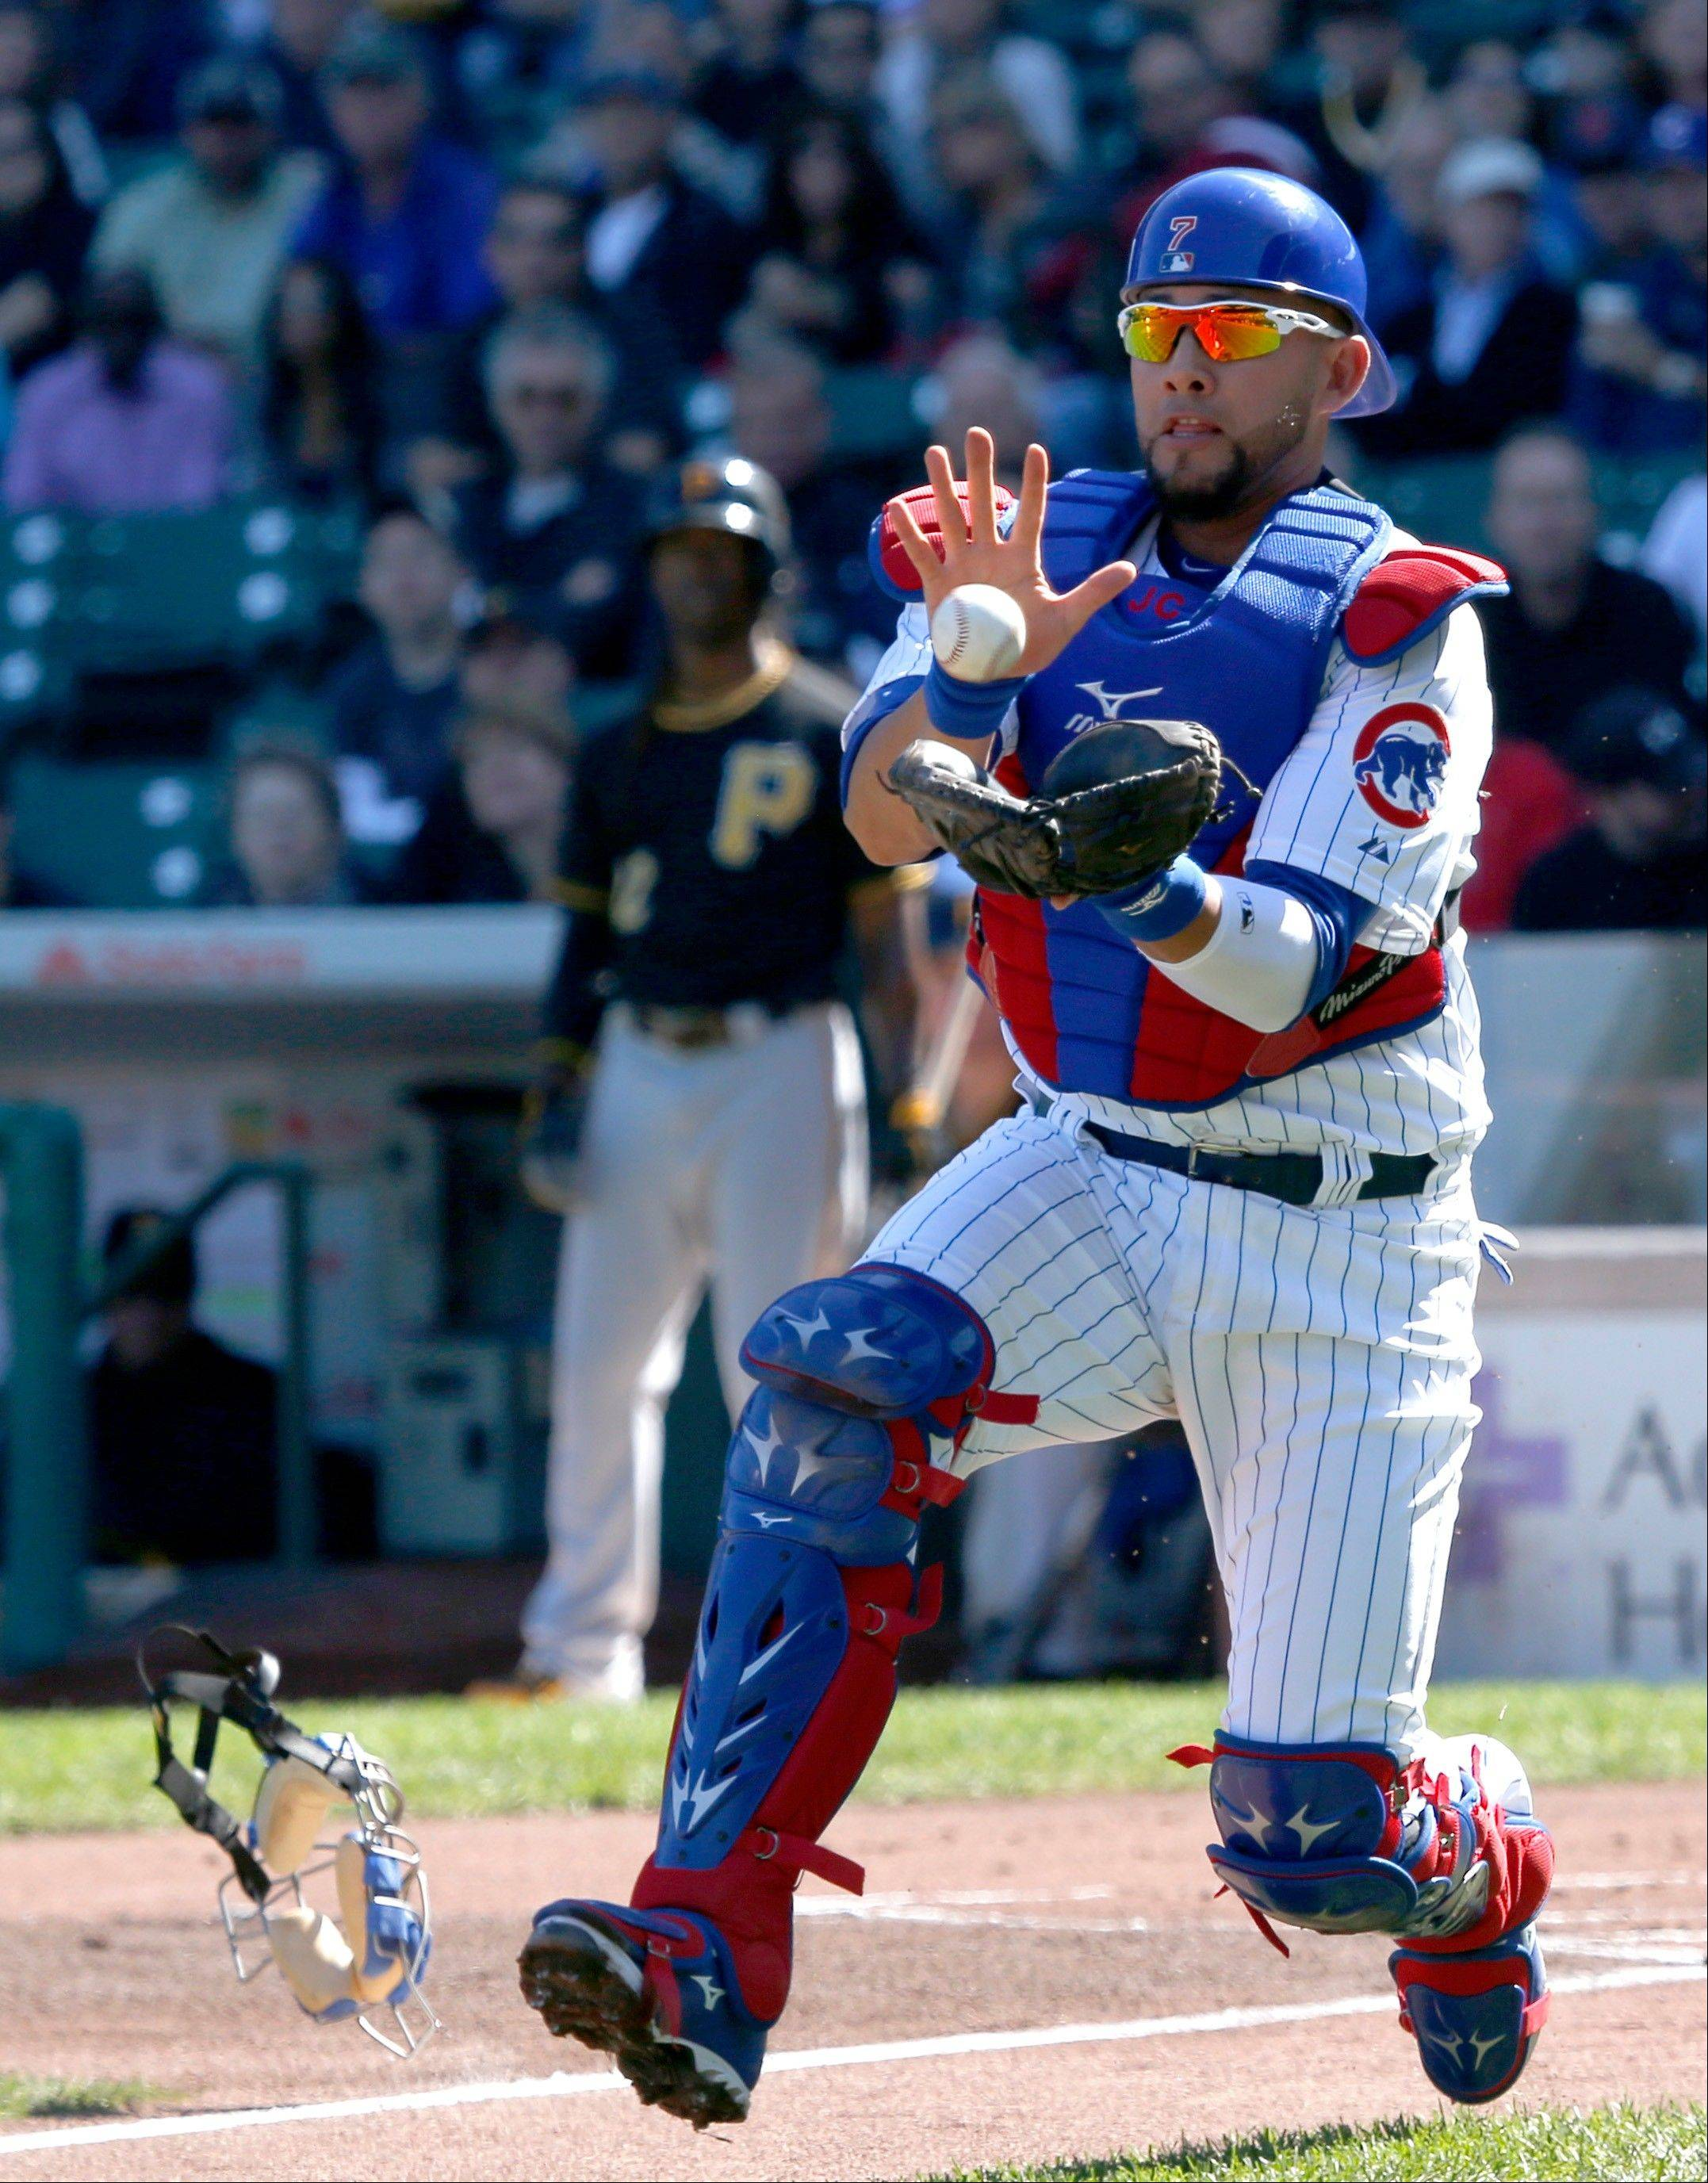 Cubs catcher J.C. Boscan catches a popped up bunt by Pittsburgh Pirates' Neil Walker during the first inning of a baseball game Wednesday in Chicago.